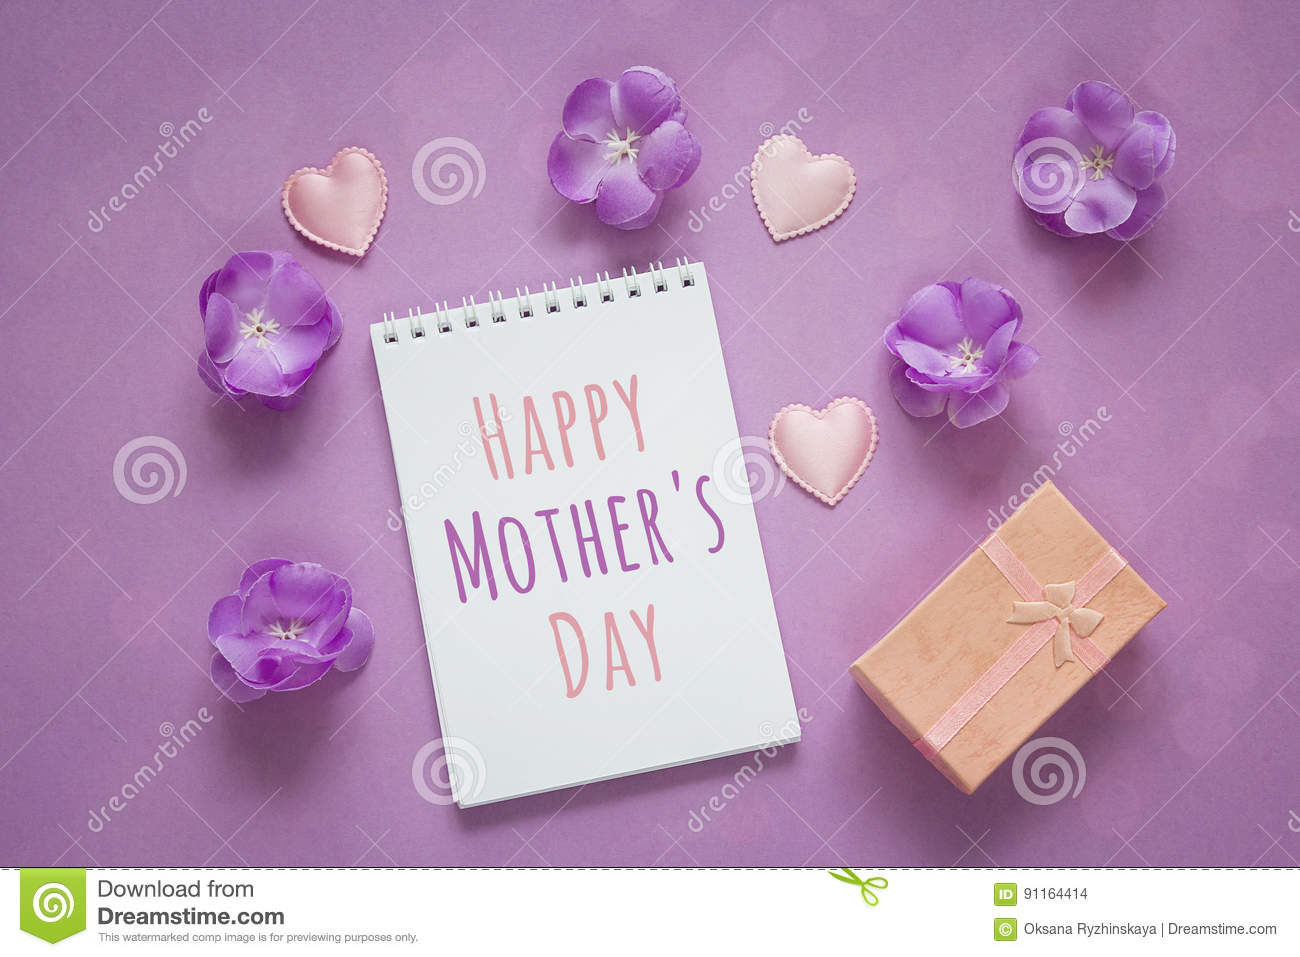 Mothers Day Message With Gift Box Purple Flowers And Hearts On